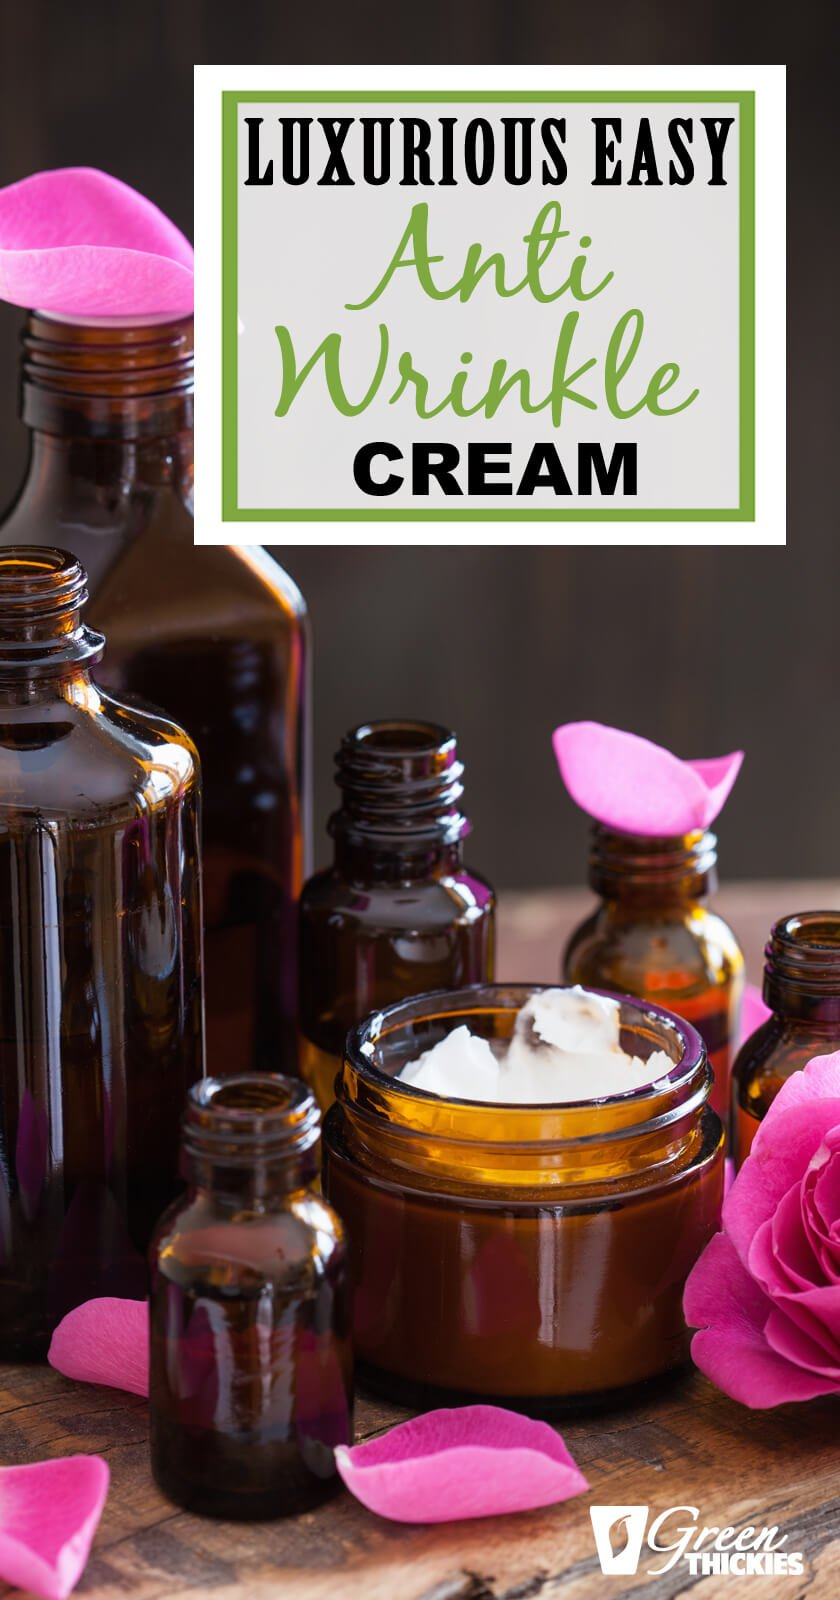 This homemade anti-wrinkle cream is better than any store bought cream you can findClick